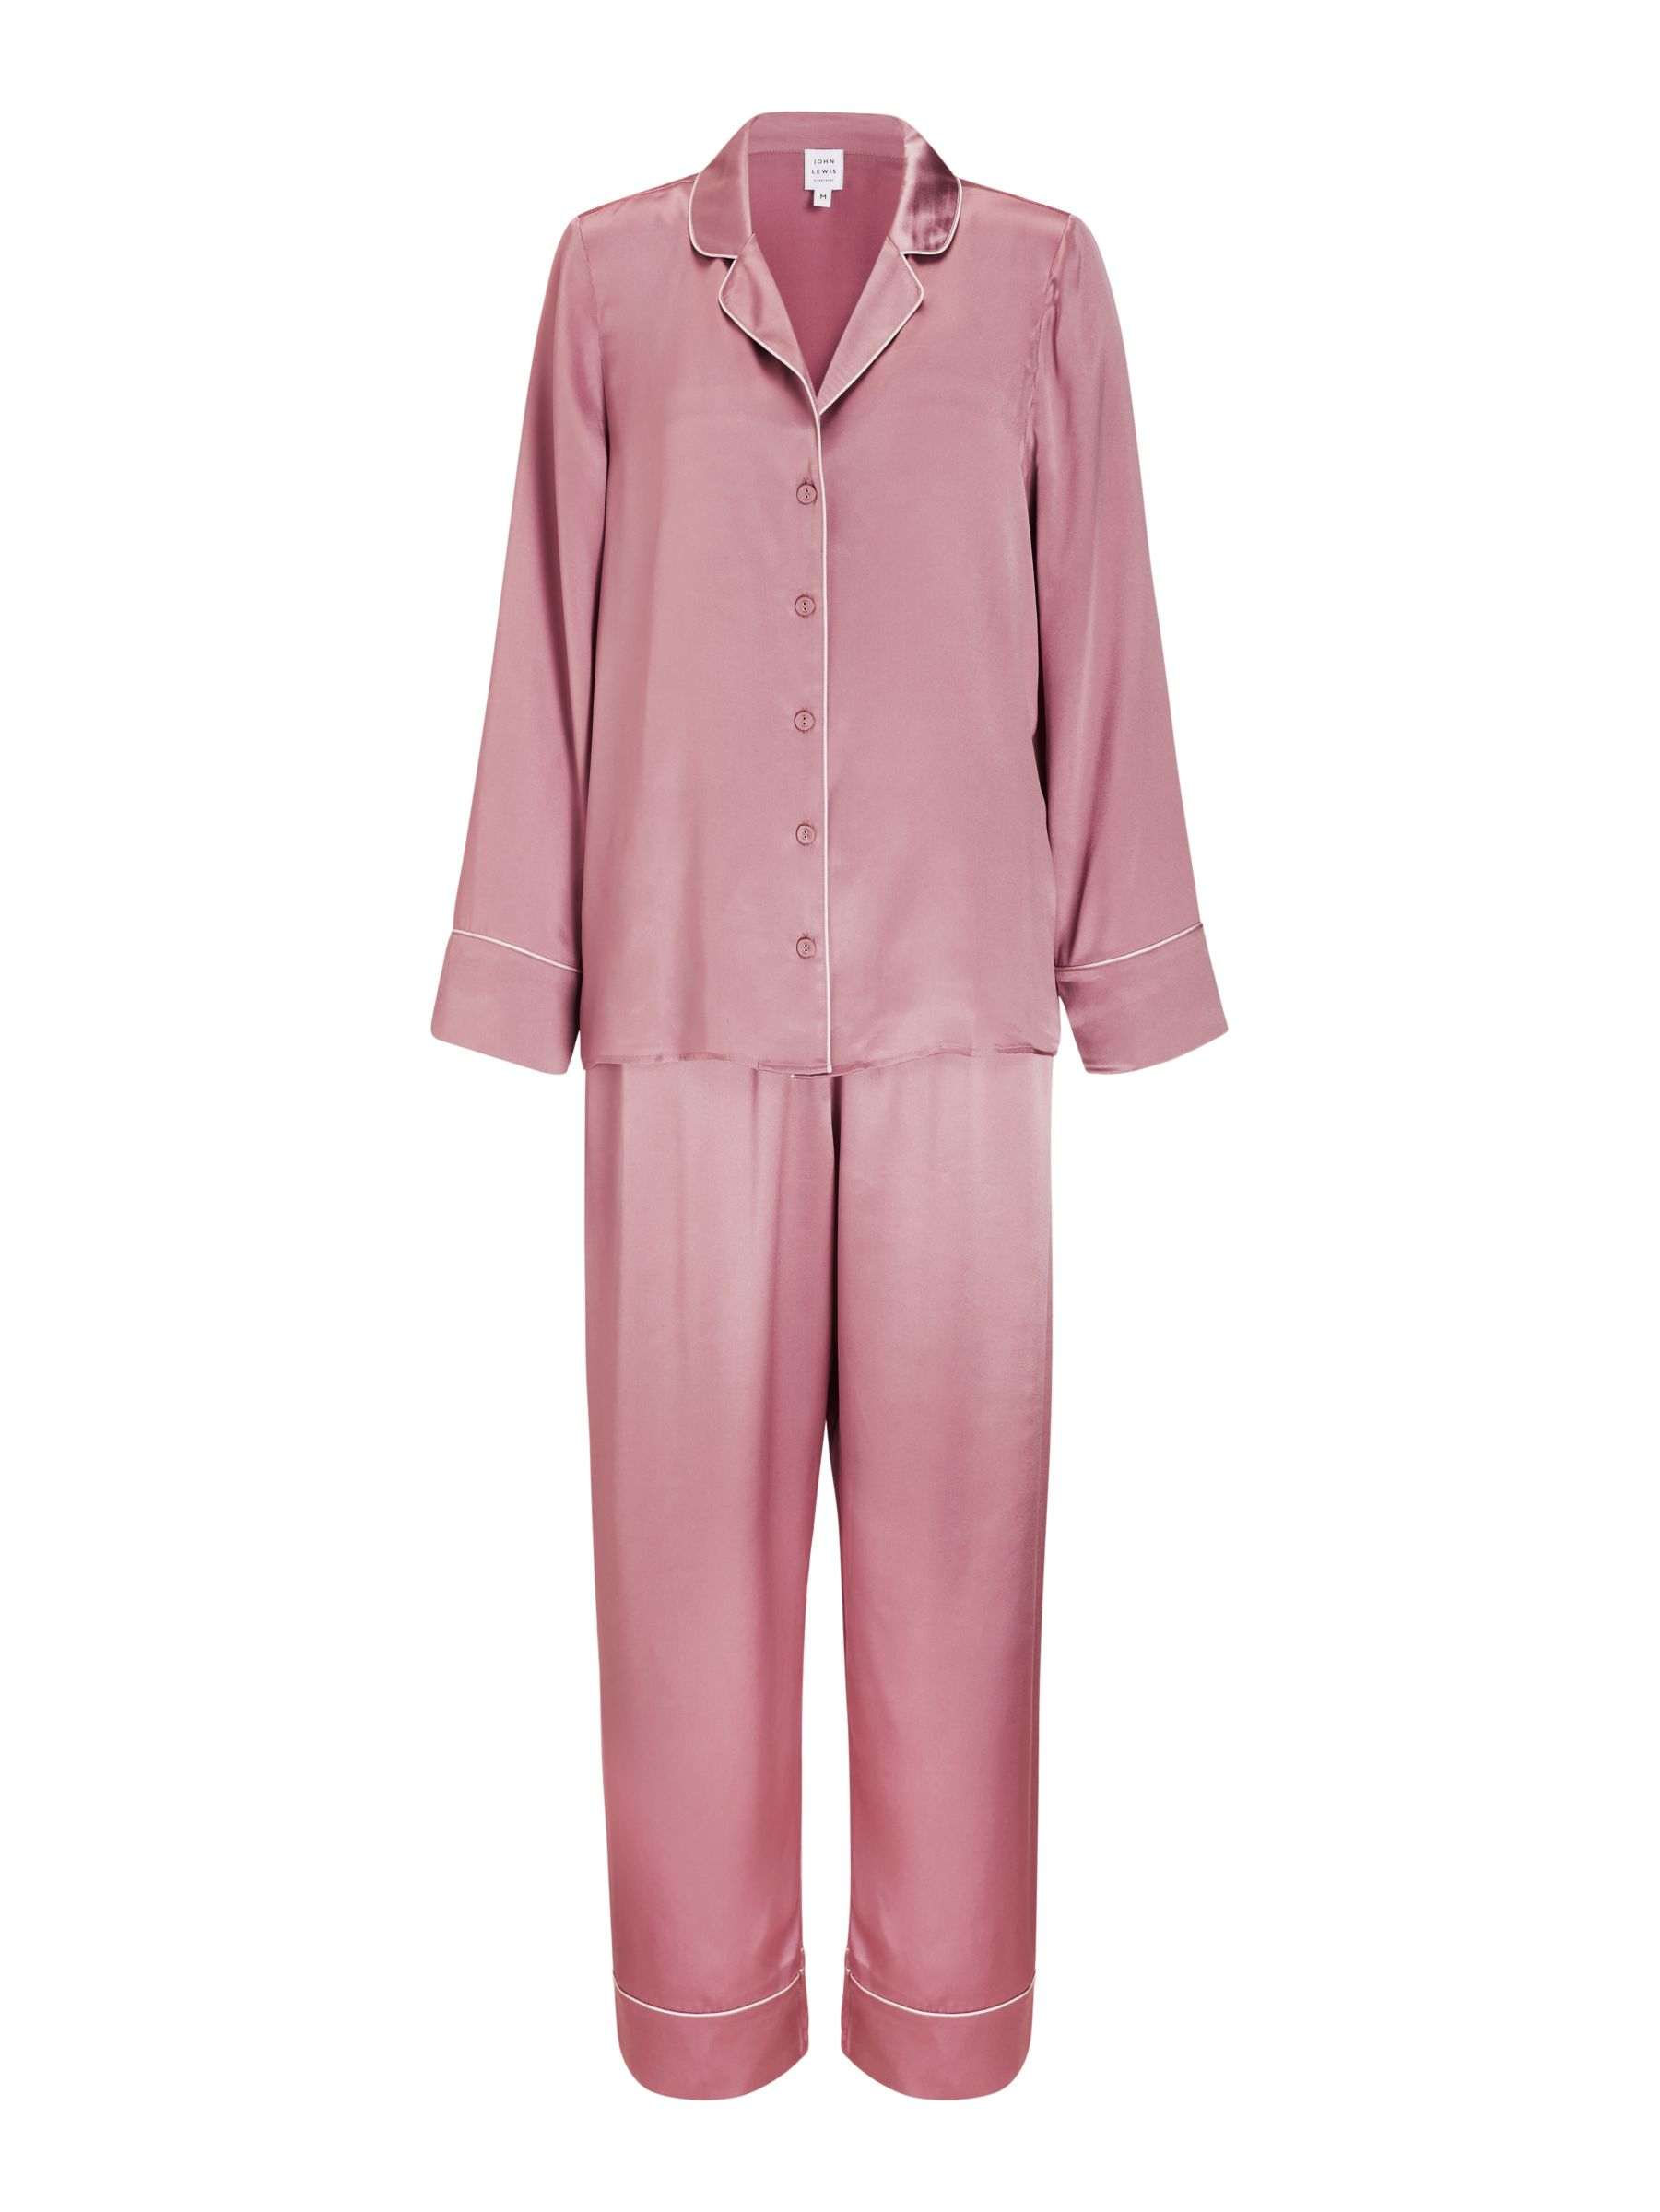 Buy John Lewis & Partners Nina Silk Pyjama Set, Rose, S Online at johnlewis.com